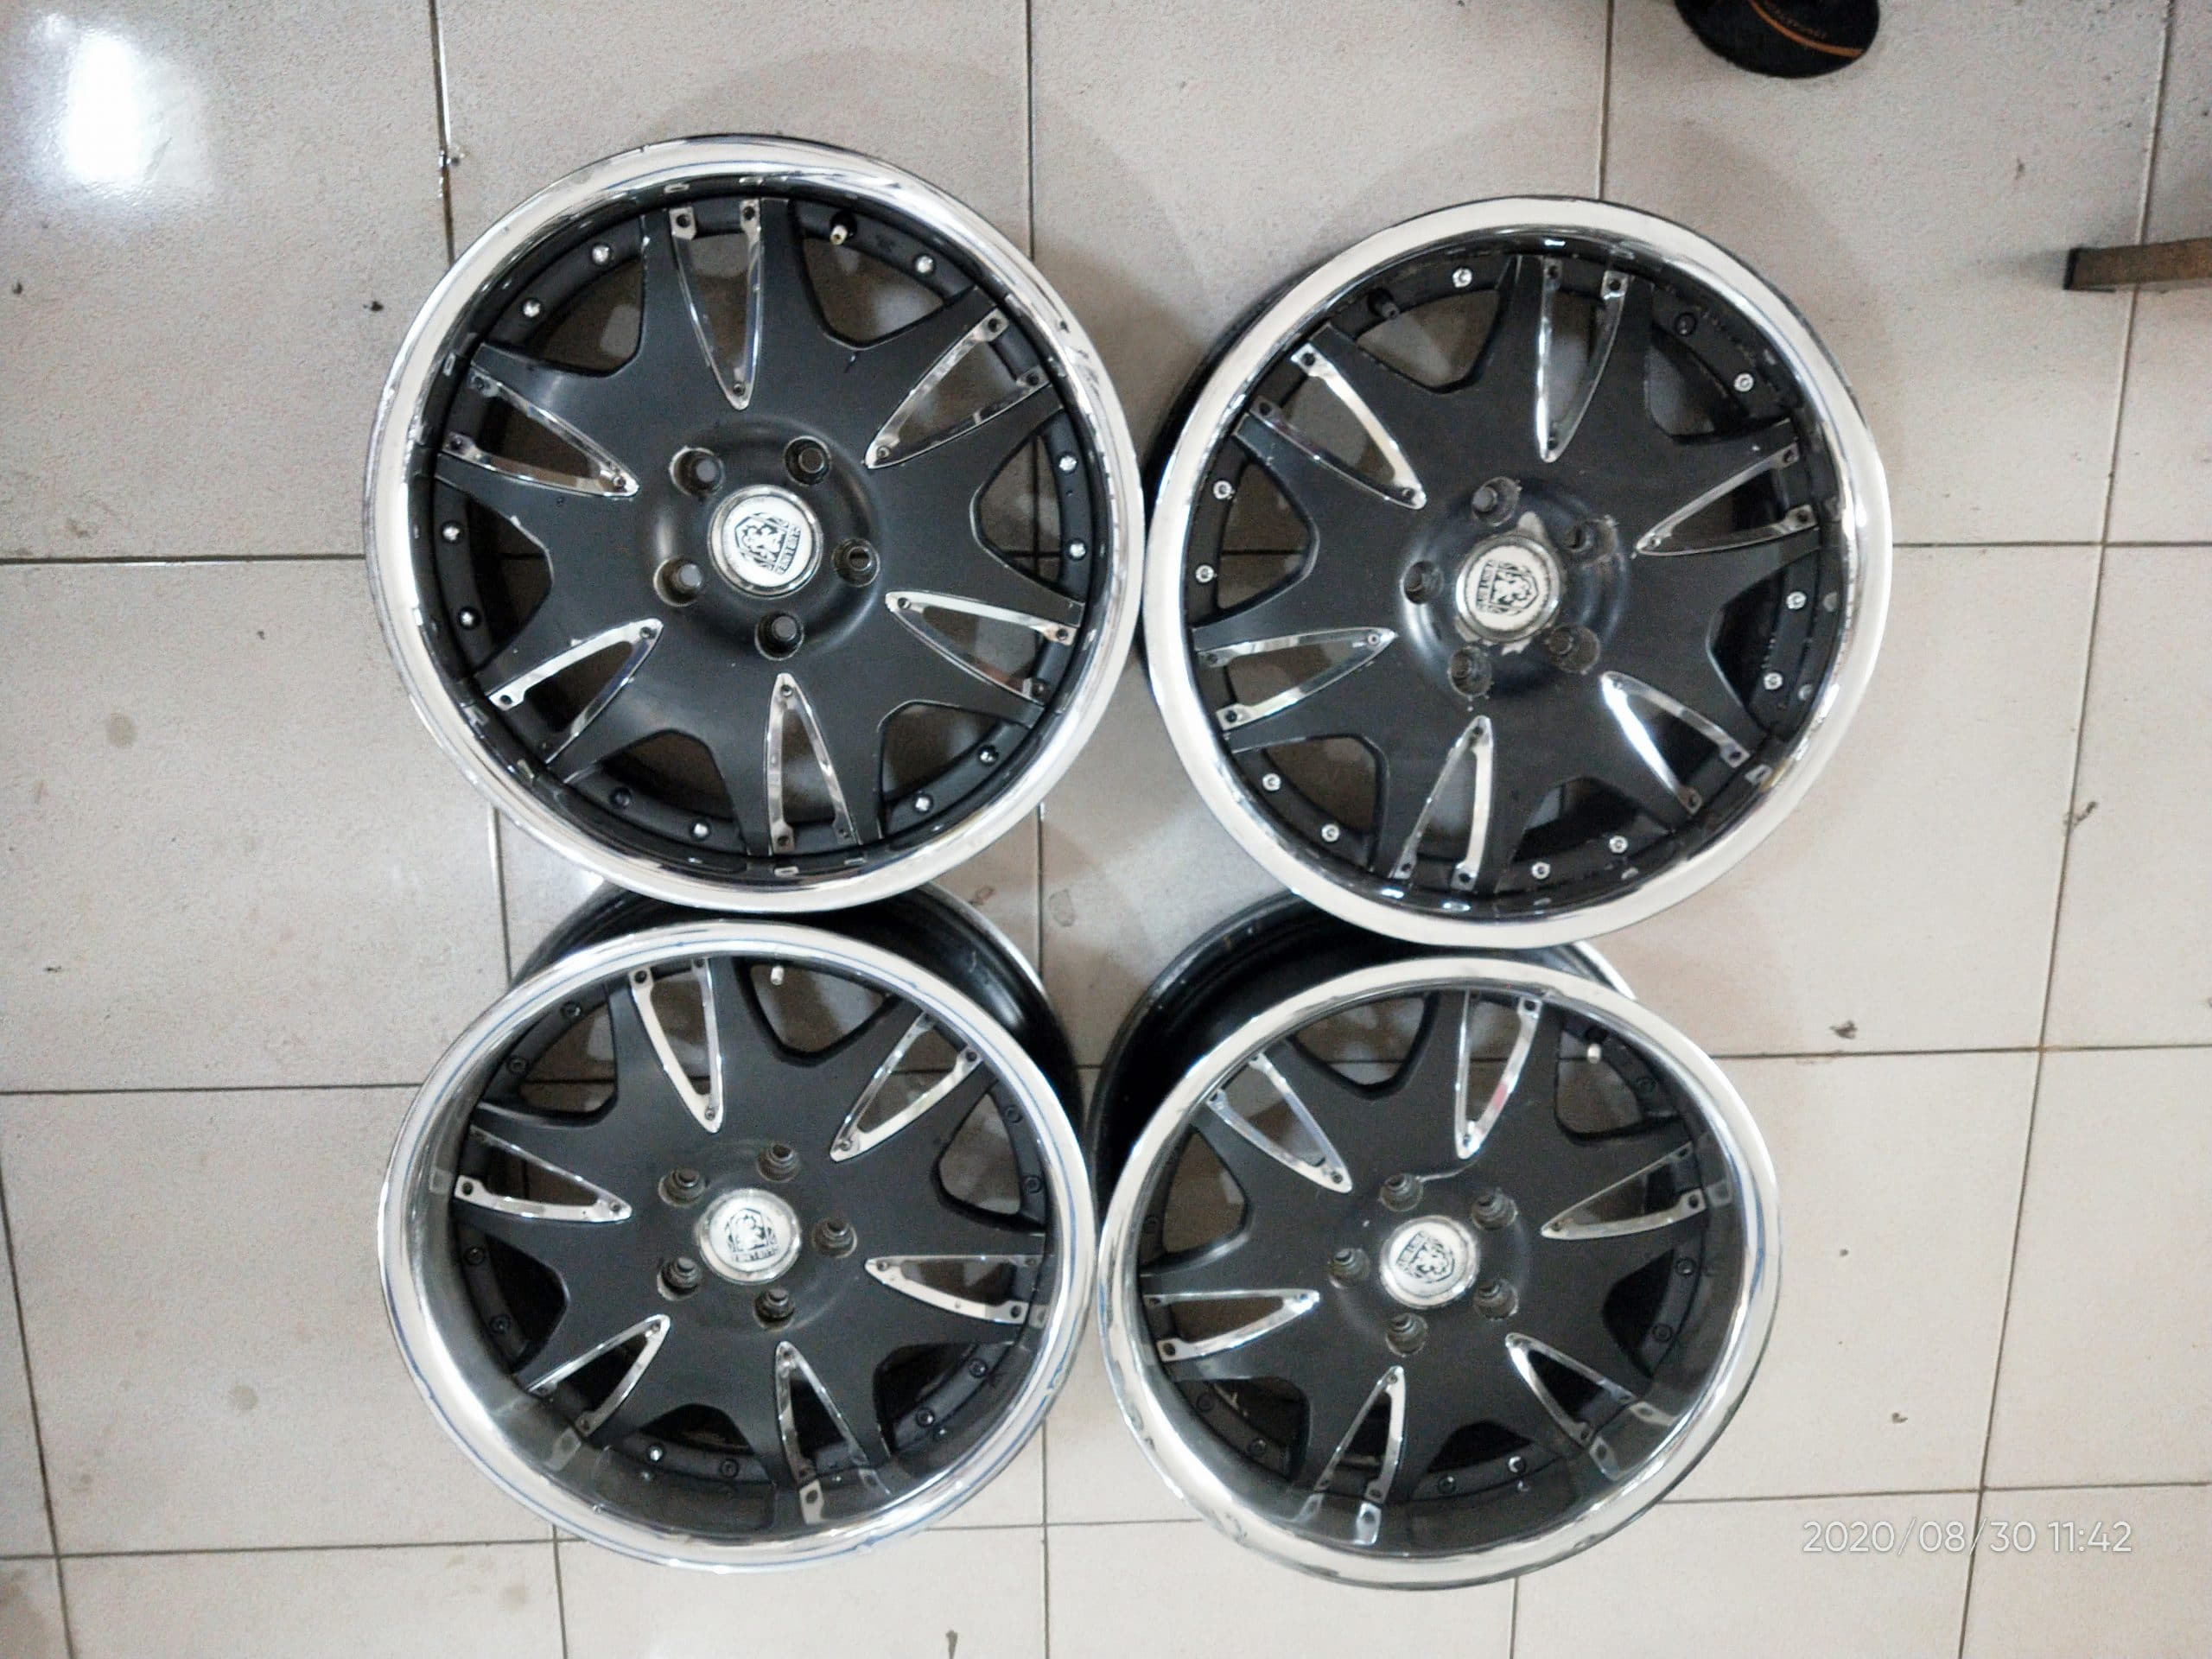 Velg second club linea murah ring17 pcd5x114,3